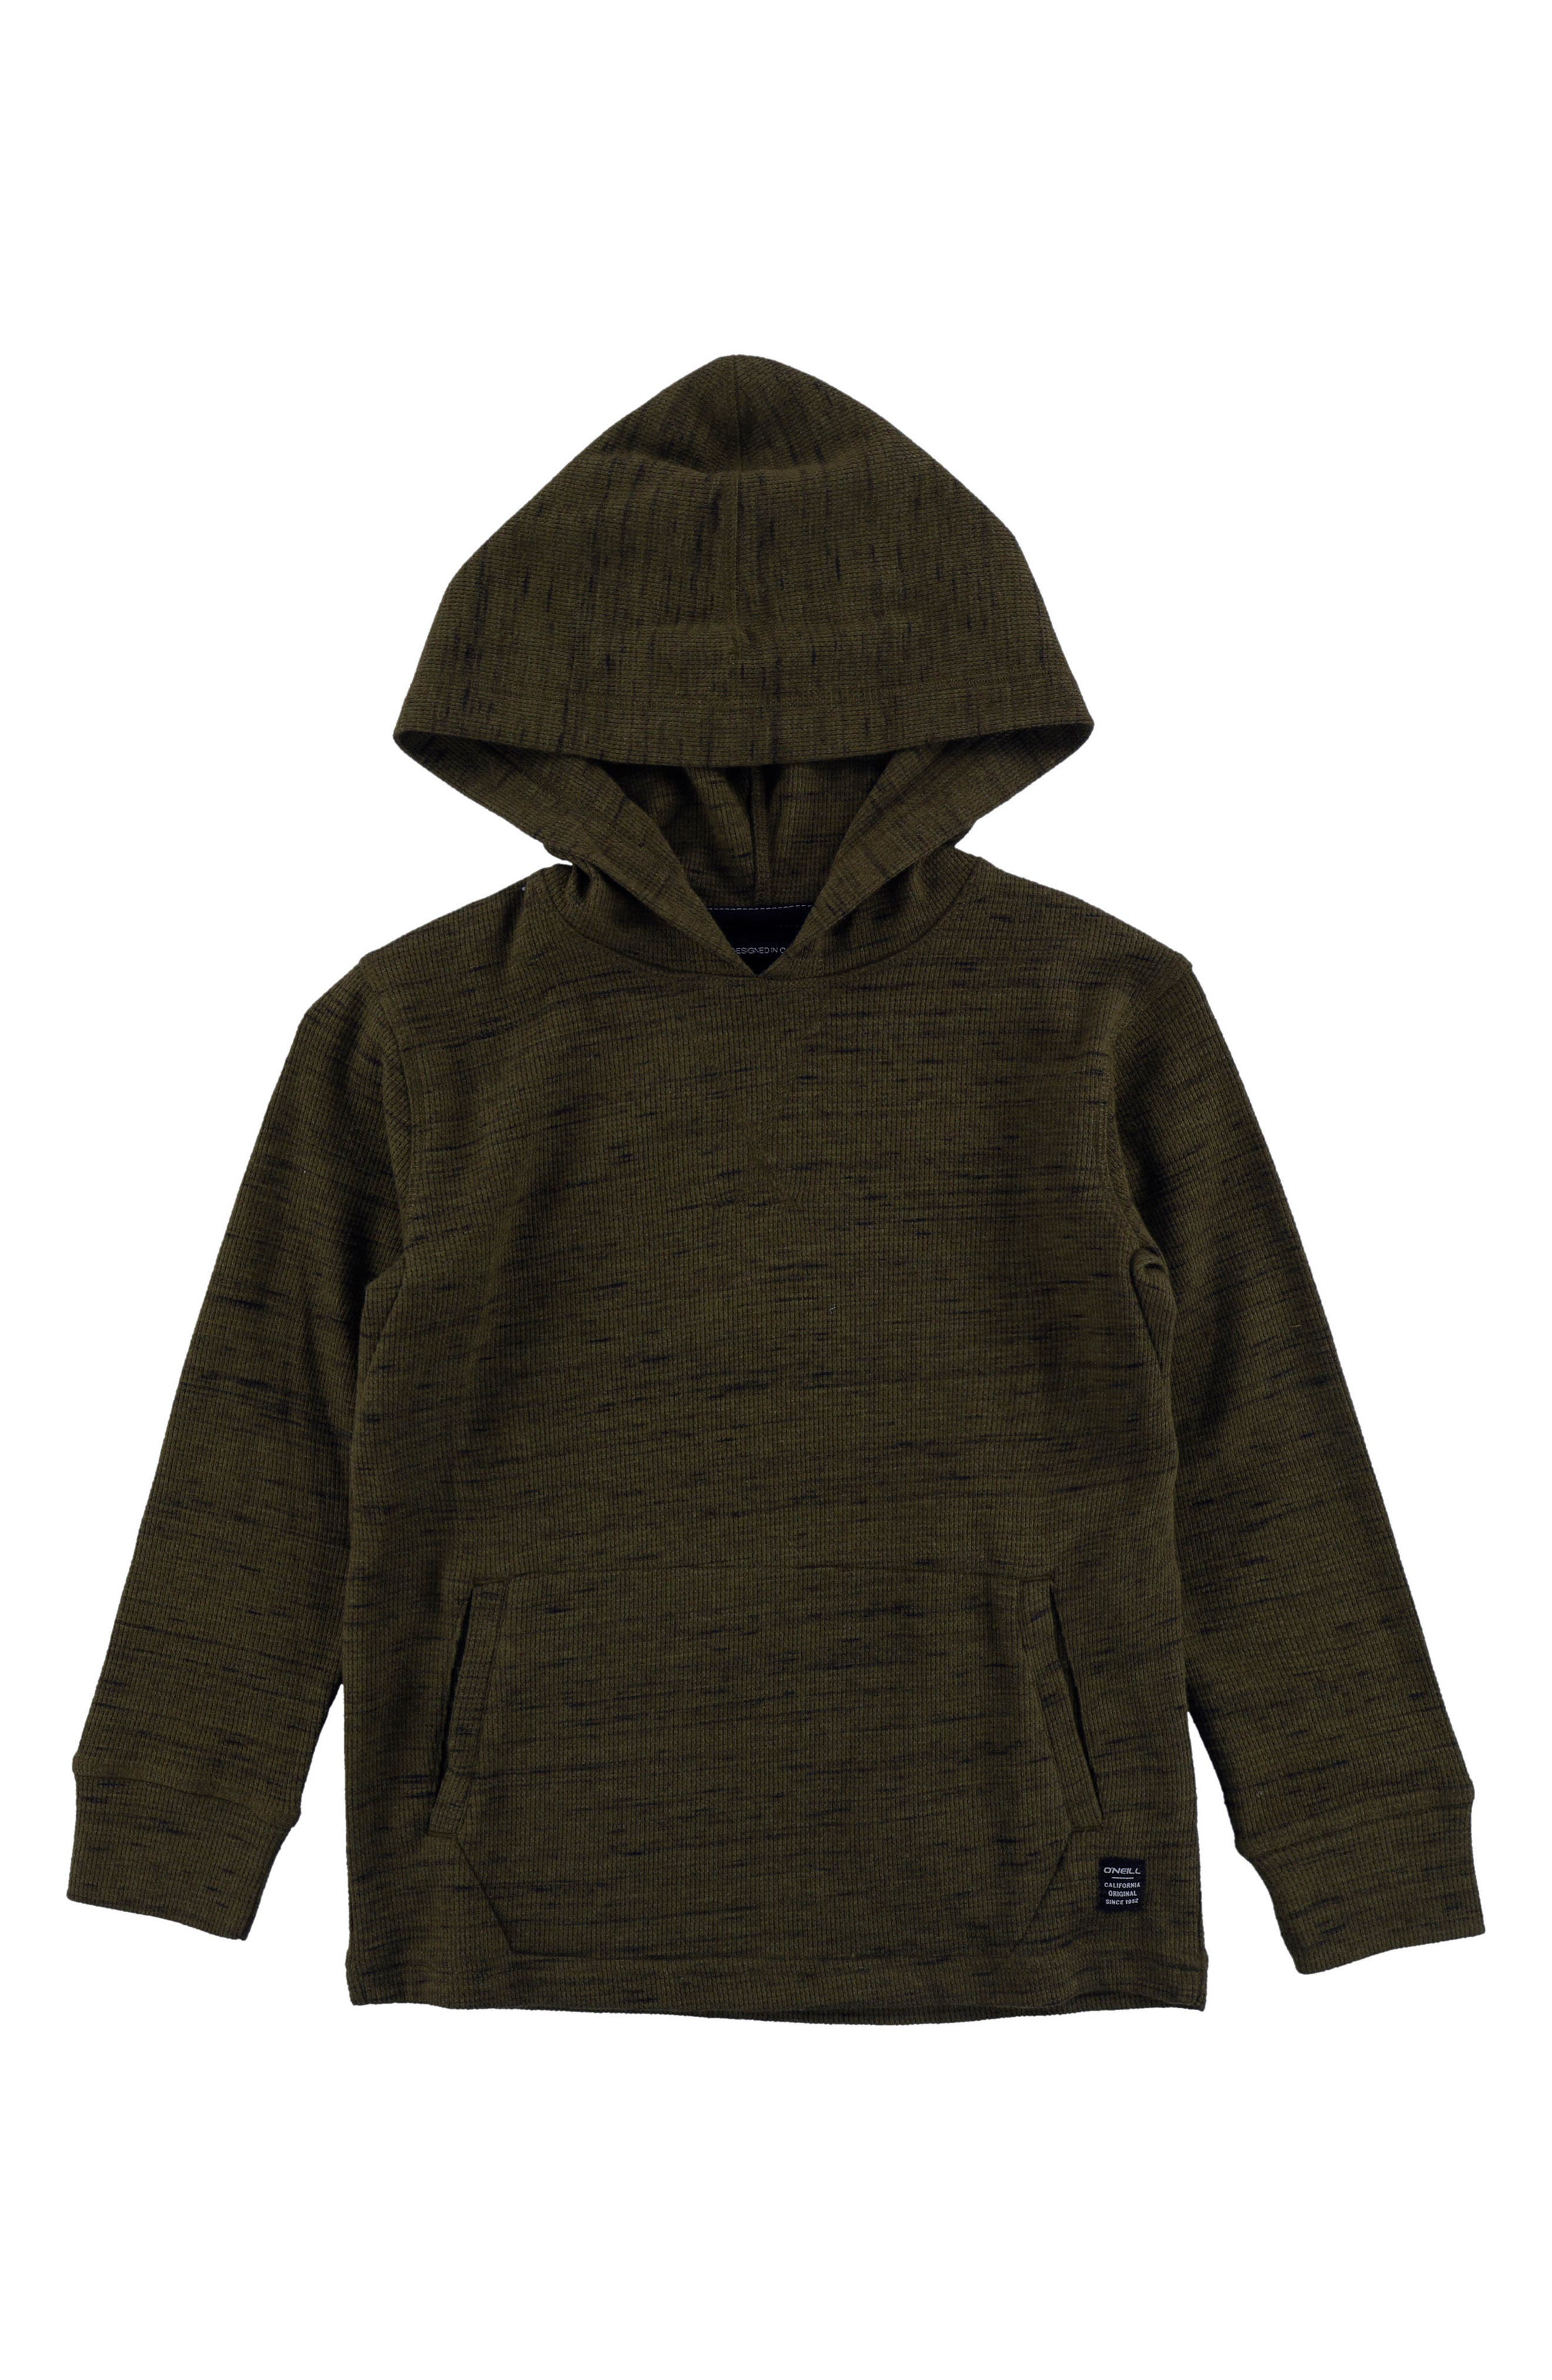 Main Image - O'Neill Boldin Thermal Pullover Hoodie (Toddler Boys, Little Boys & Big Boys)